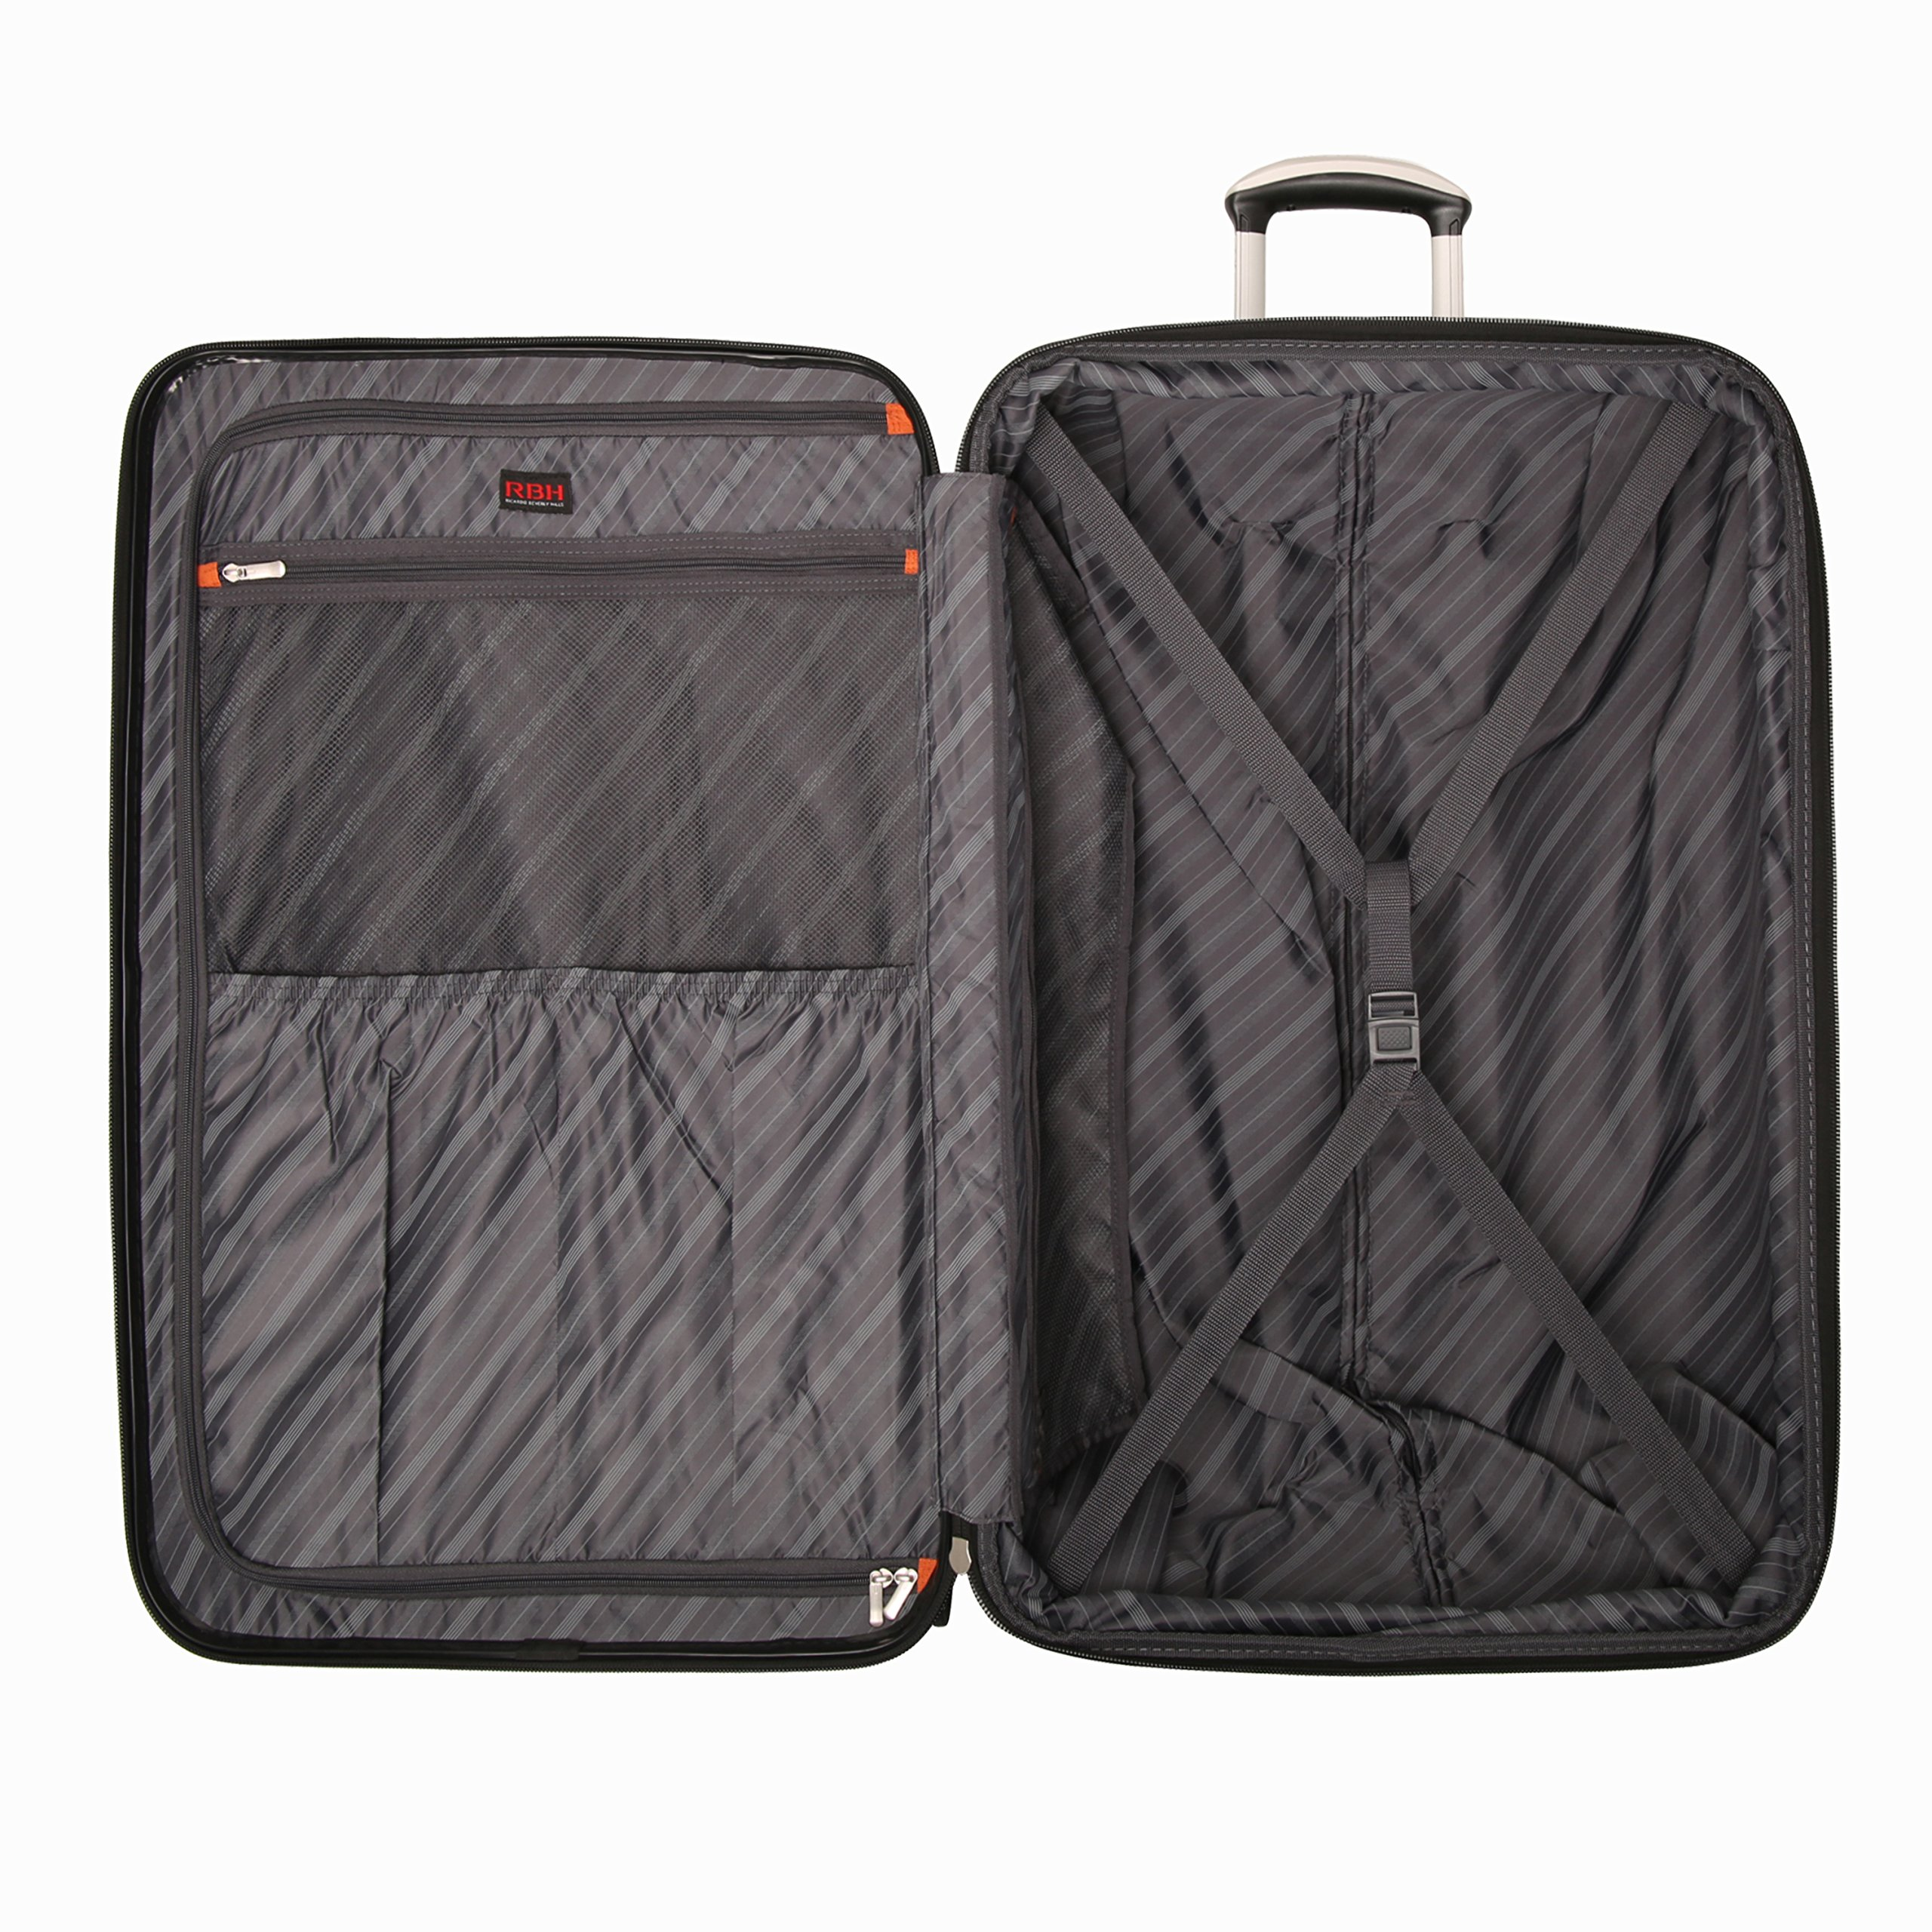 Ricardo Beverly Hills Luggage Rodeo Drive 29-Inch 4-Wheel Expandable Upright, Black Cherry, One Size by Ricardo Beverly Hills (Image #3)